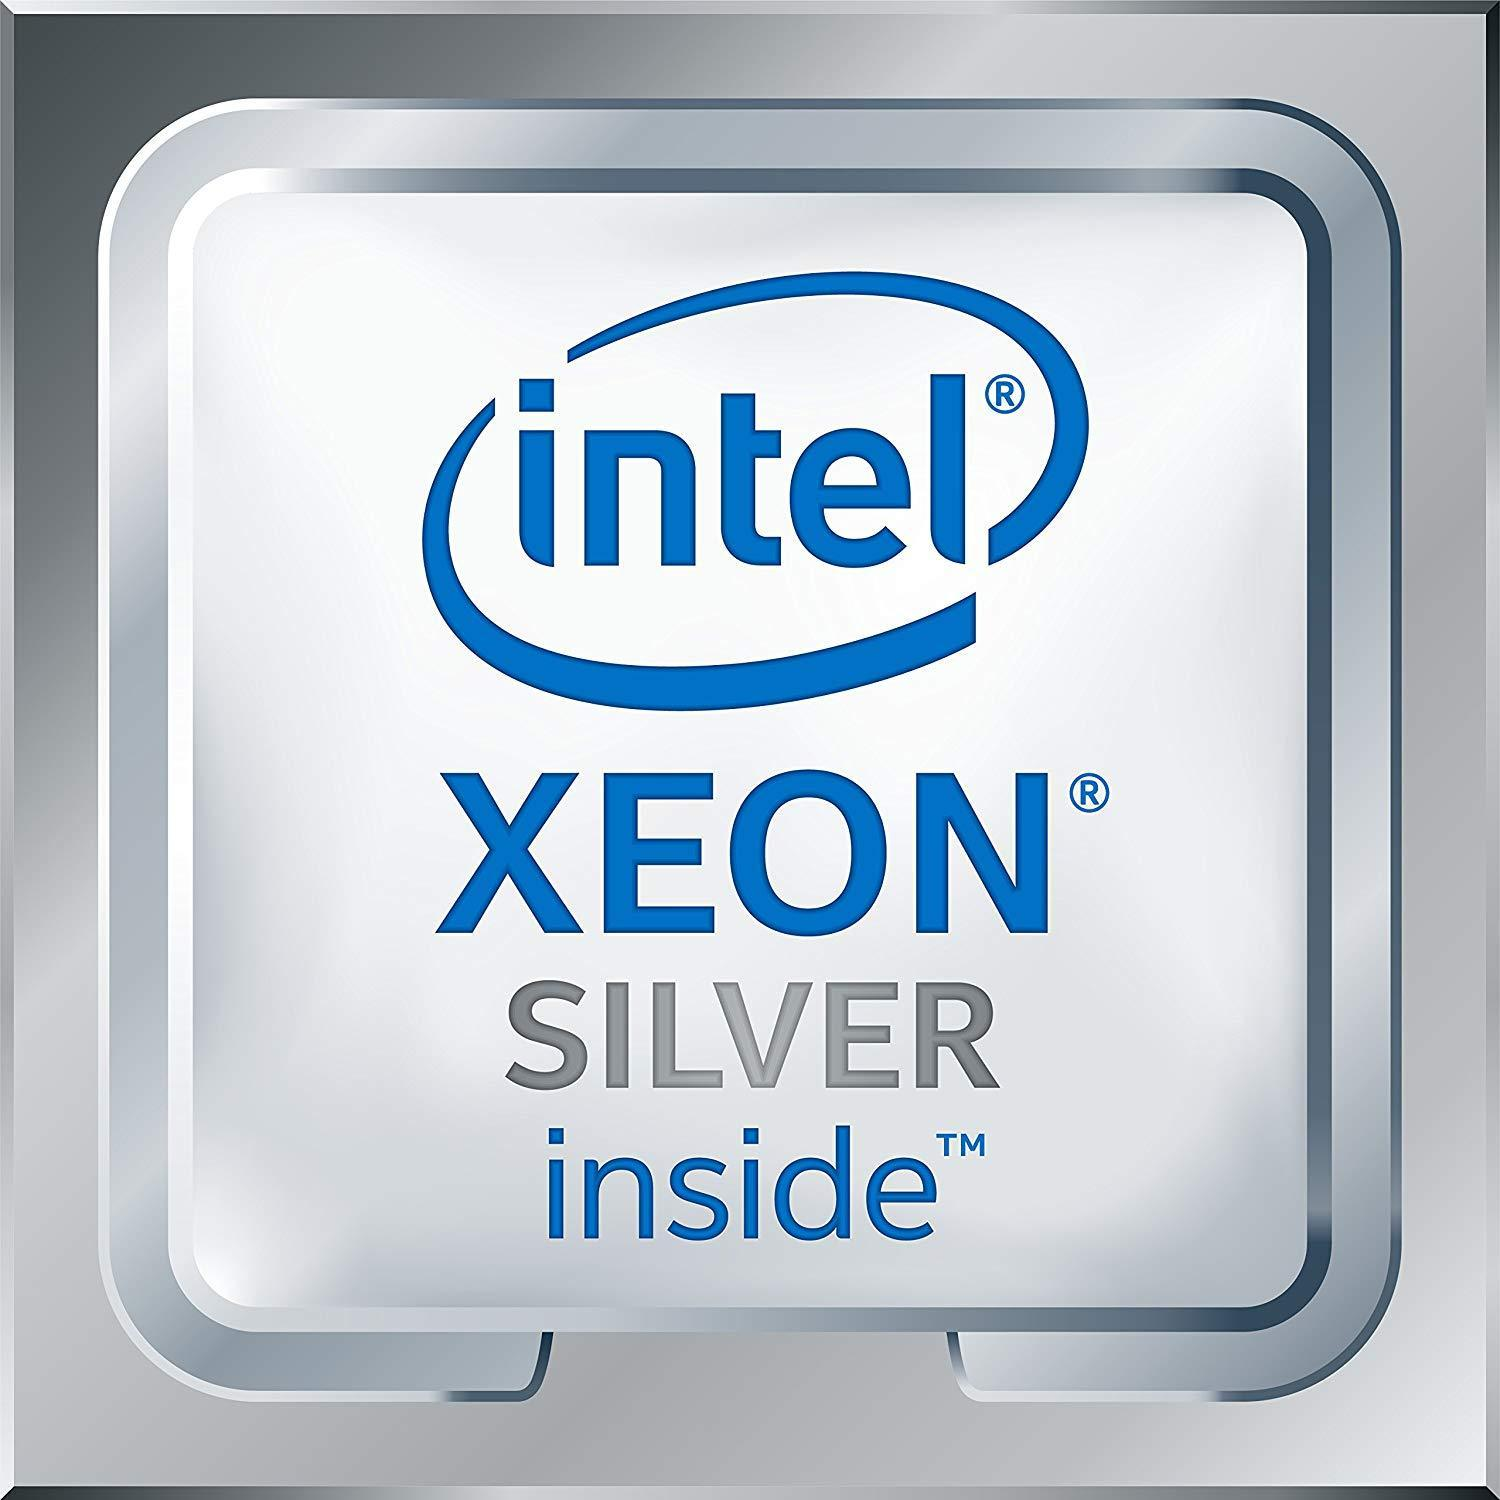 SRG1W - Intel Xeon-Silver 4214R (2.4GHz/12-core/100W) Processor